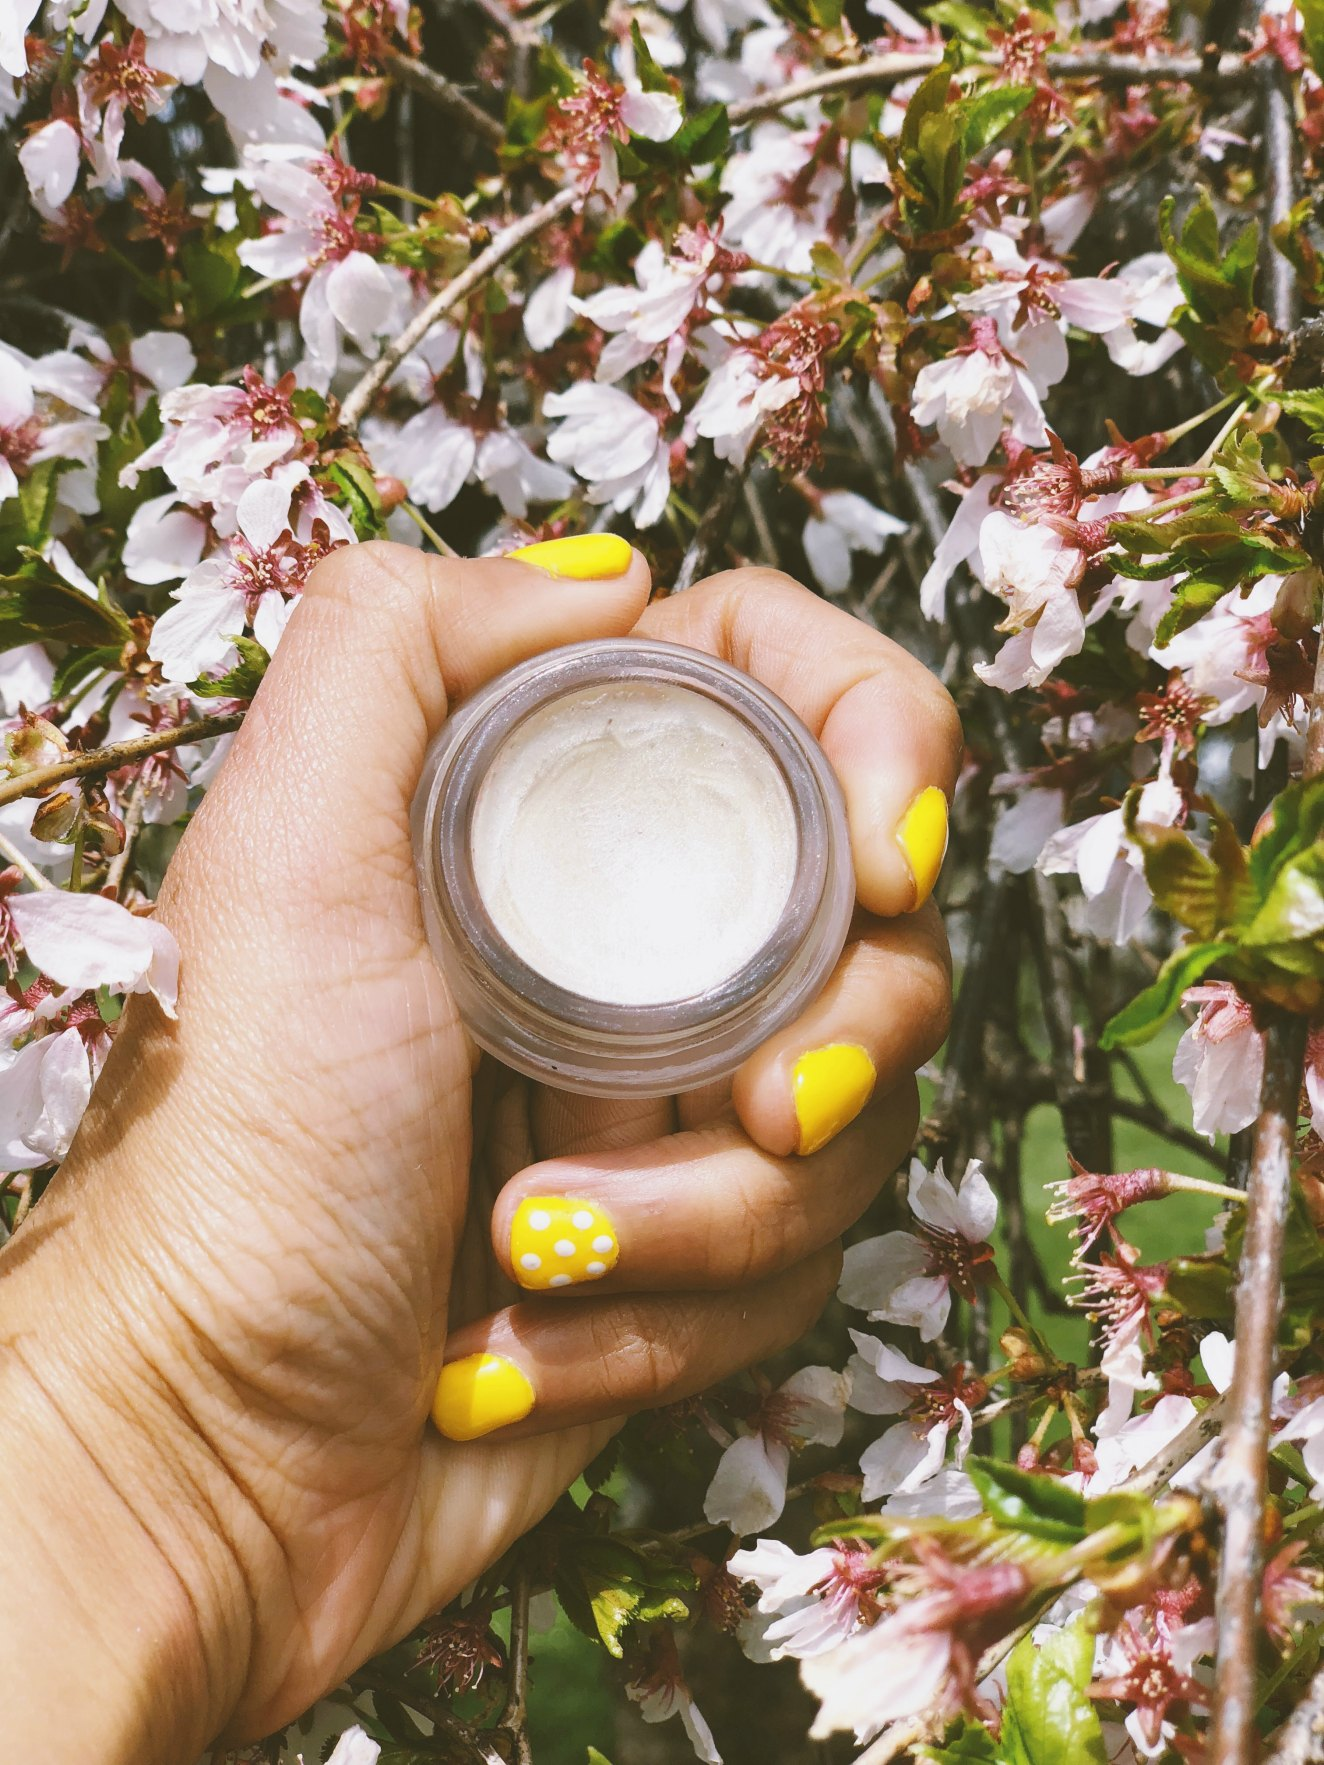 Lifestyle blog dreaming loud sharing Sephora natural beauty favorites- RMS beauty Living Luminizer - Cruelty Free Beauty Products From Sephora featured by natural beauty blogger, Dreaming Loud